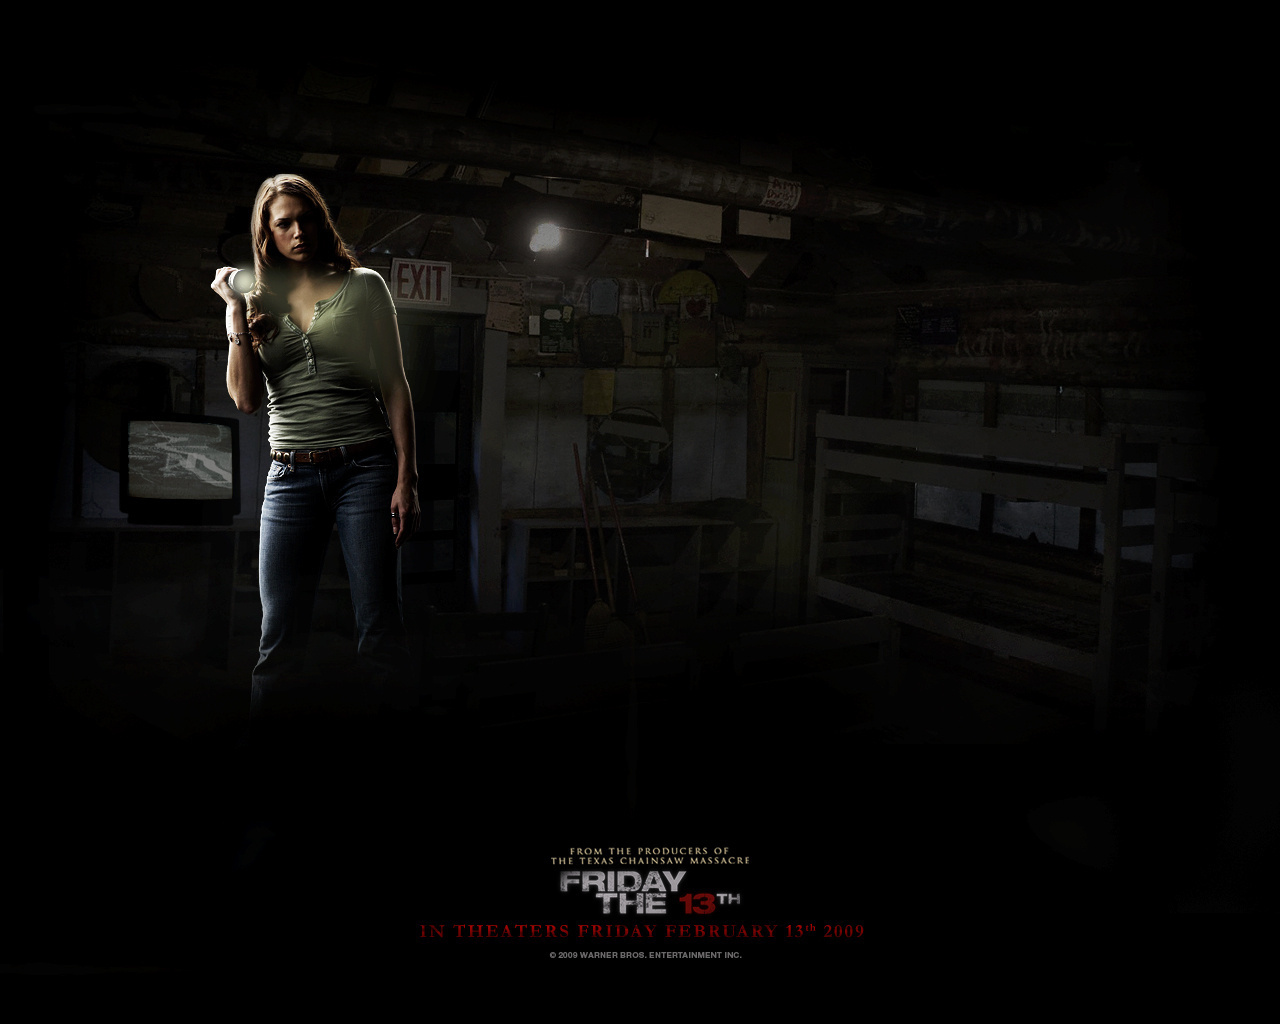 Free Download Friday The 13th Friday The 13th 2009 Wallpaper